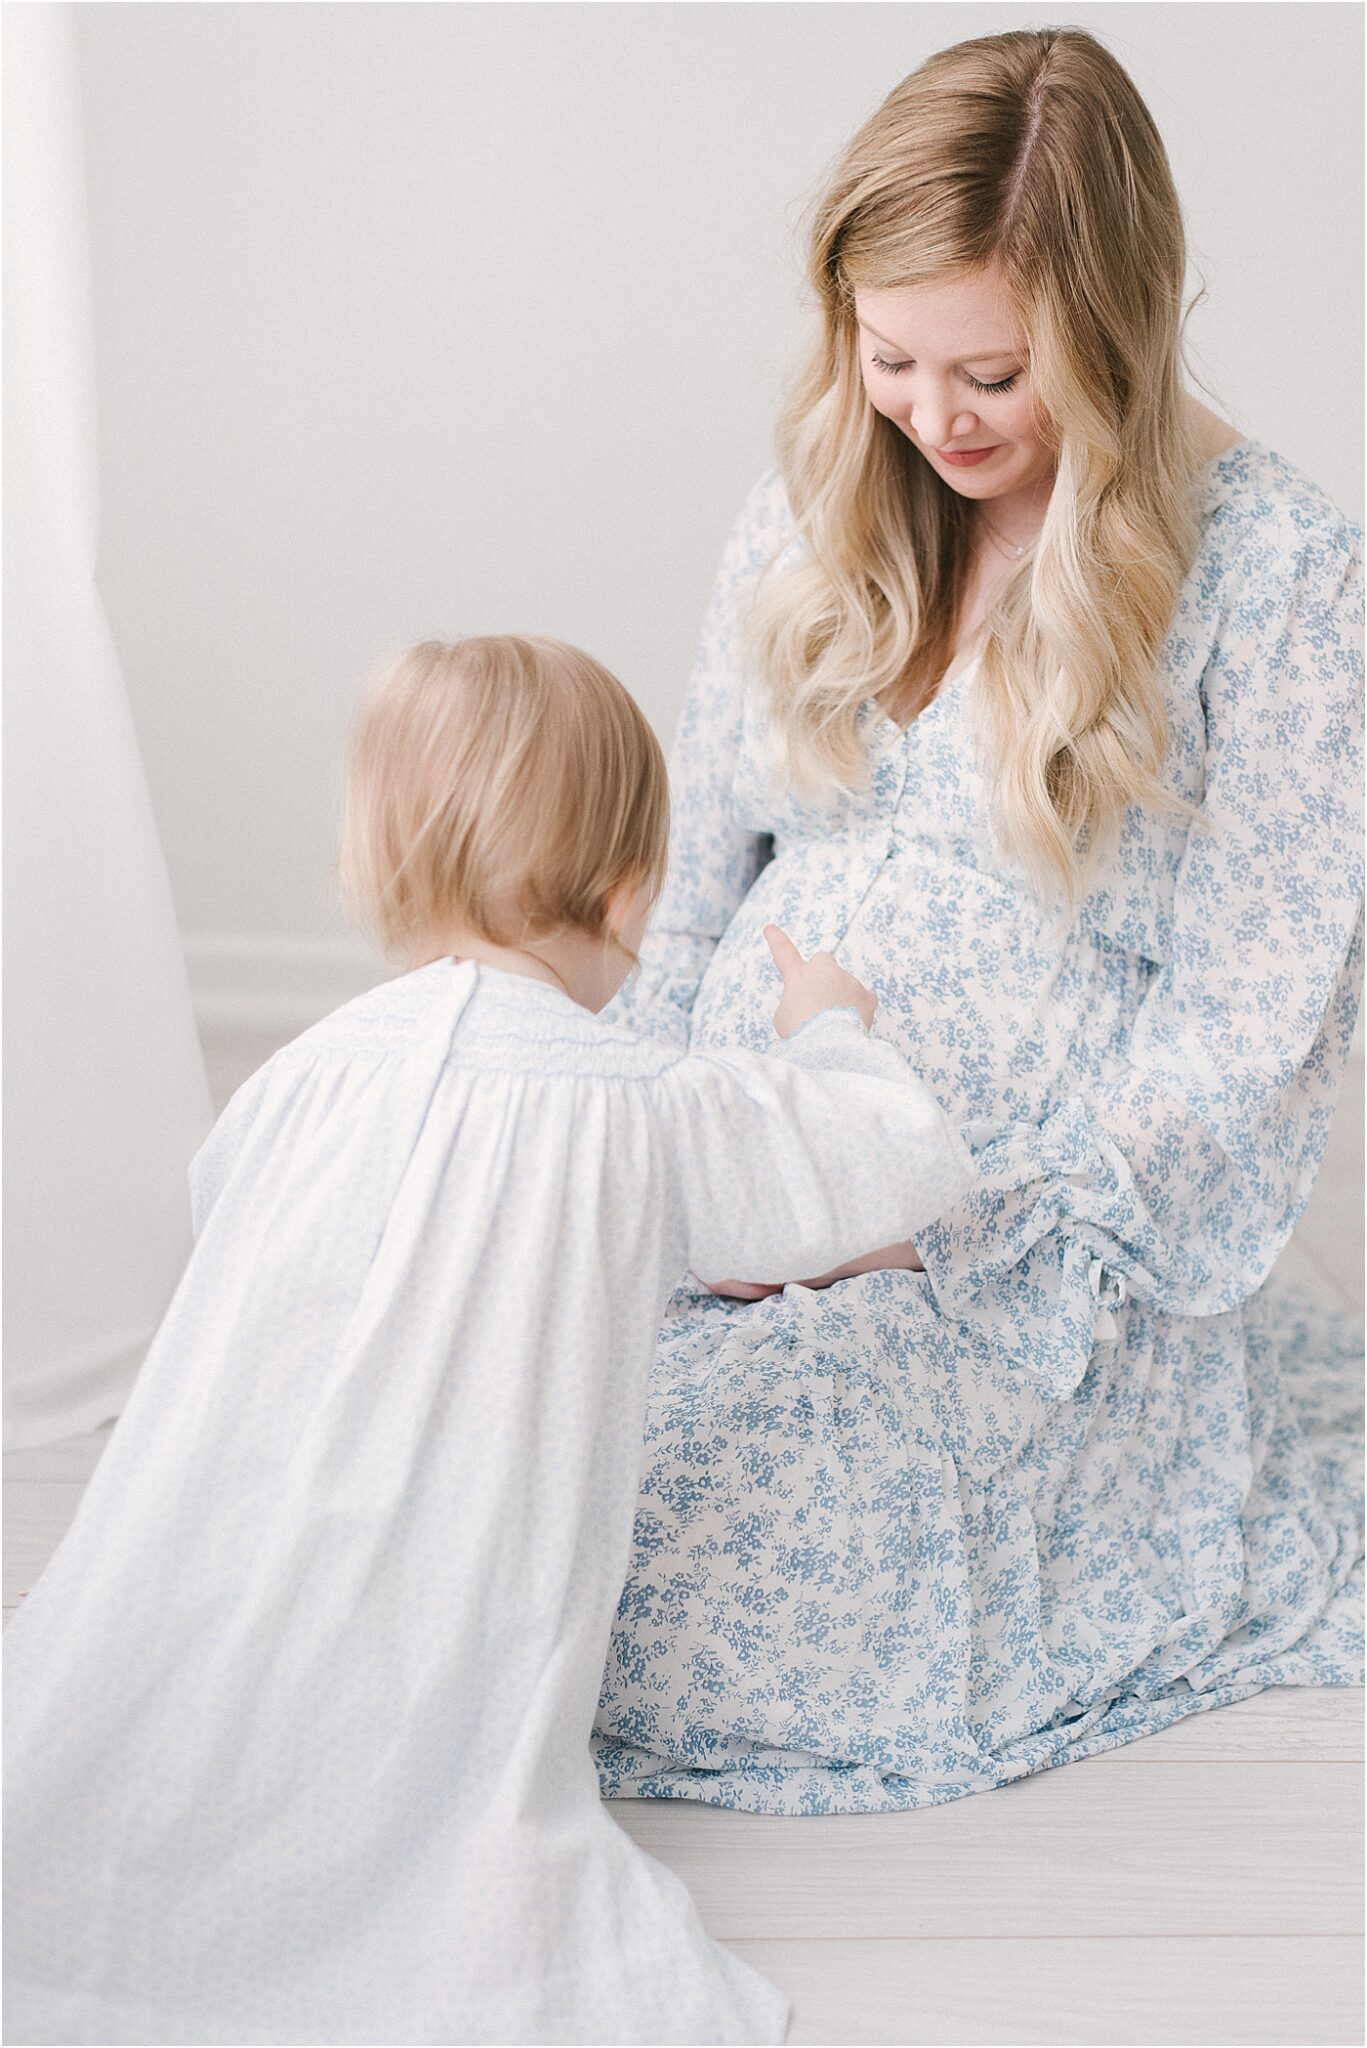 Big sister touching Mom's belly during maternity session with Lindsay Konopa Photography.